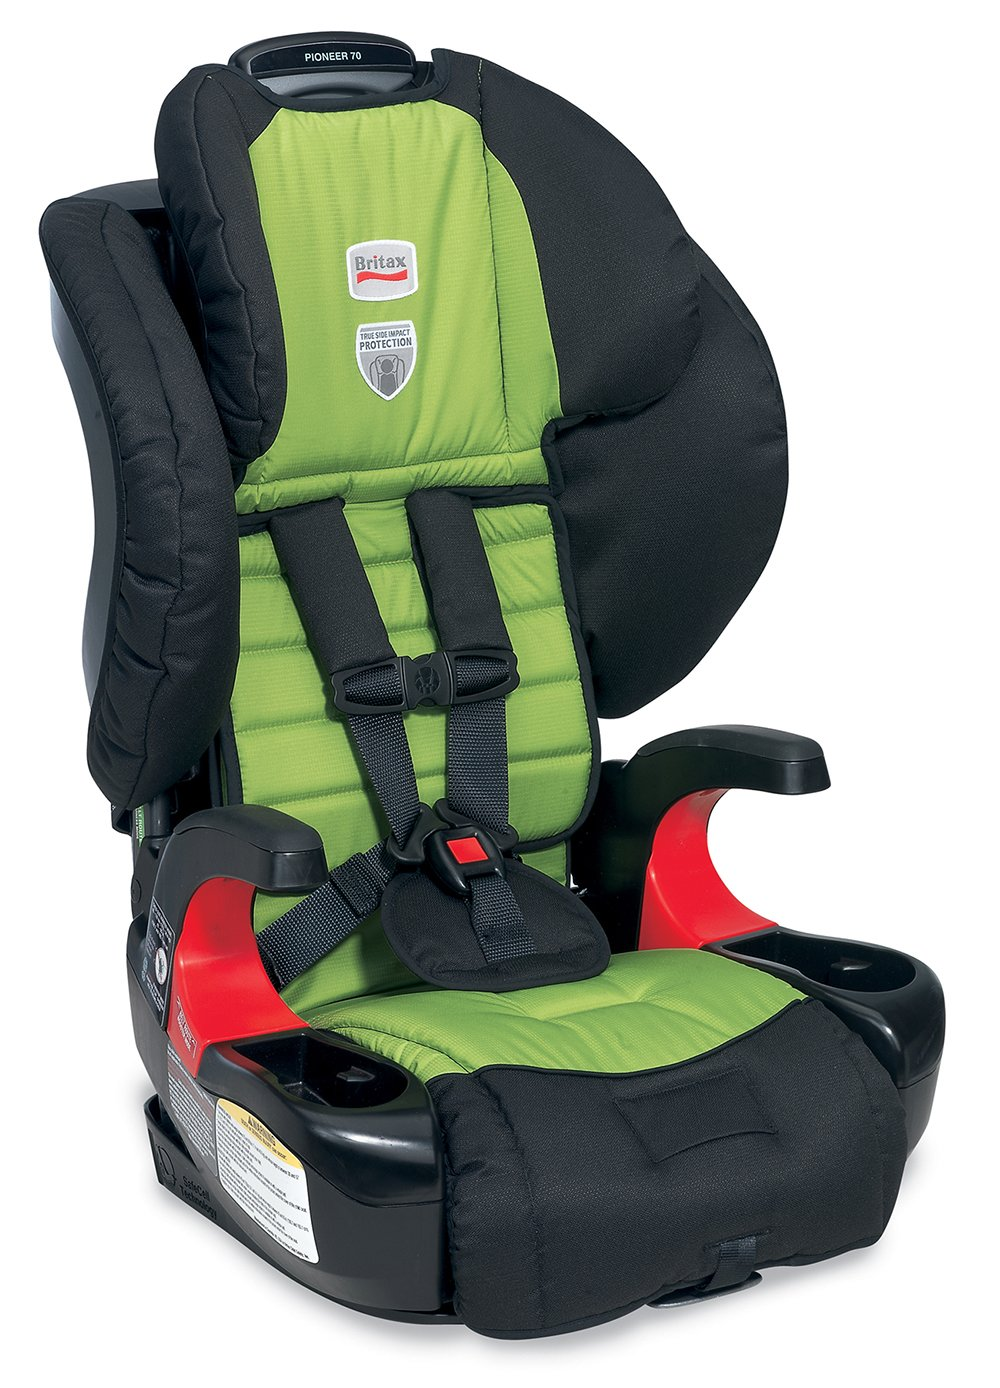 booster car seat with 5 point harness. Black Bedroom Furniture Sets. Home Design Ideas